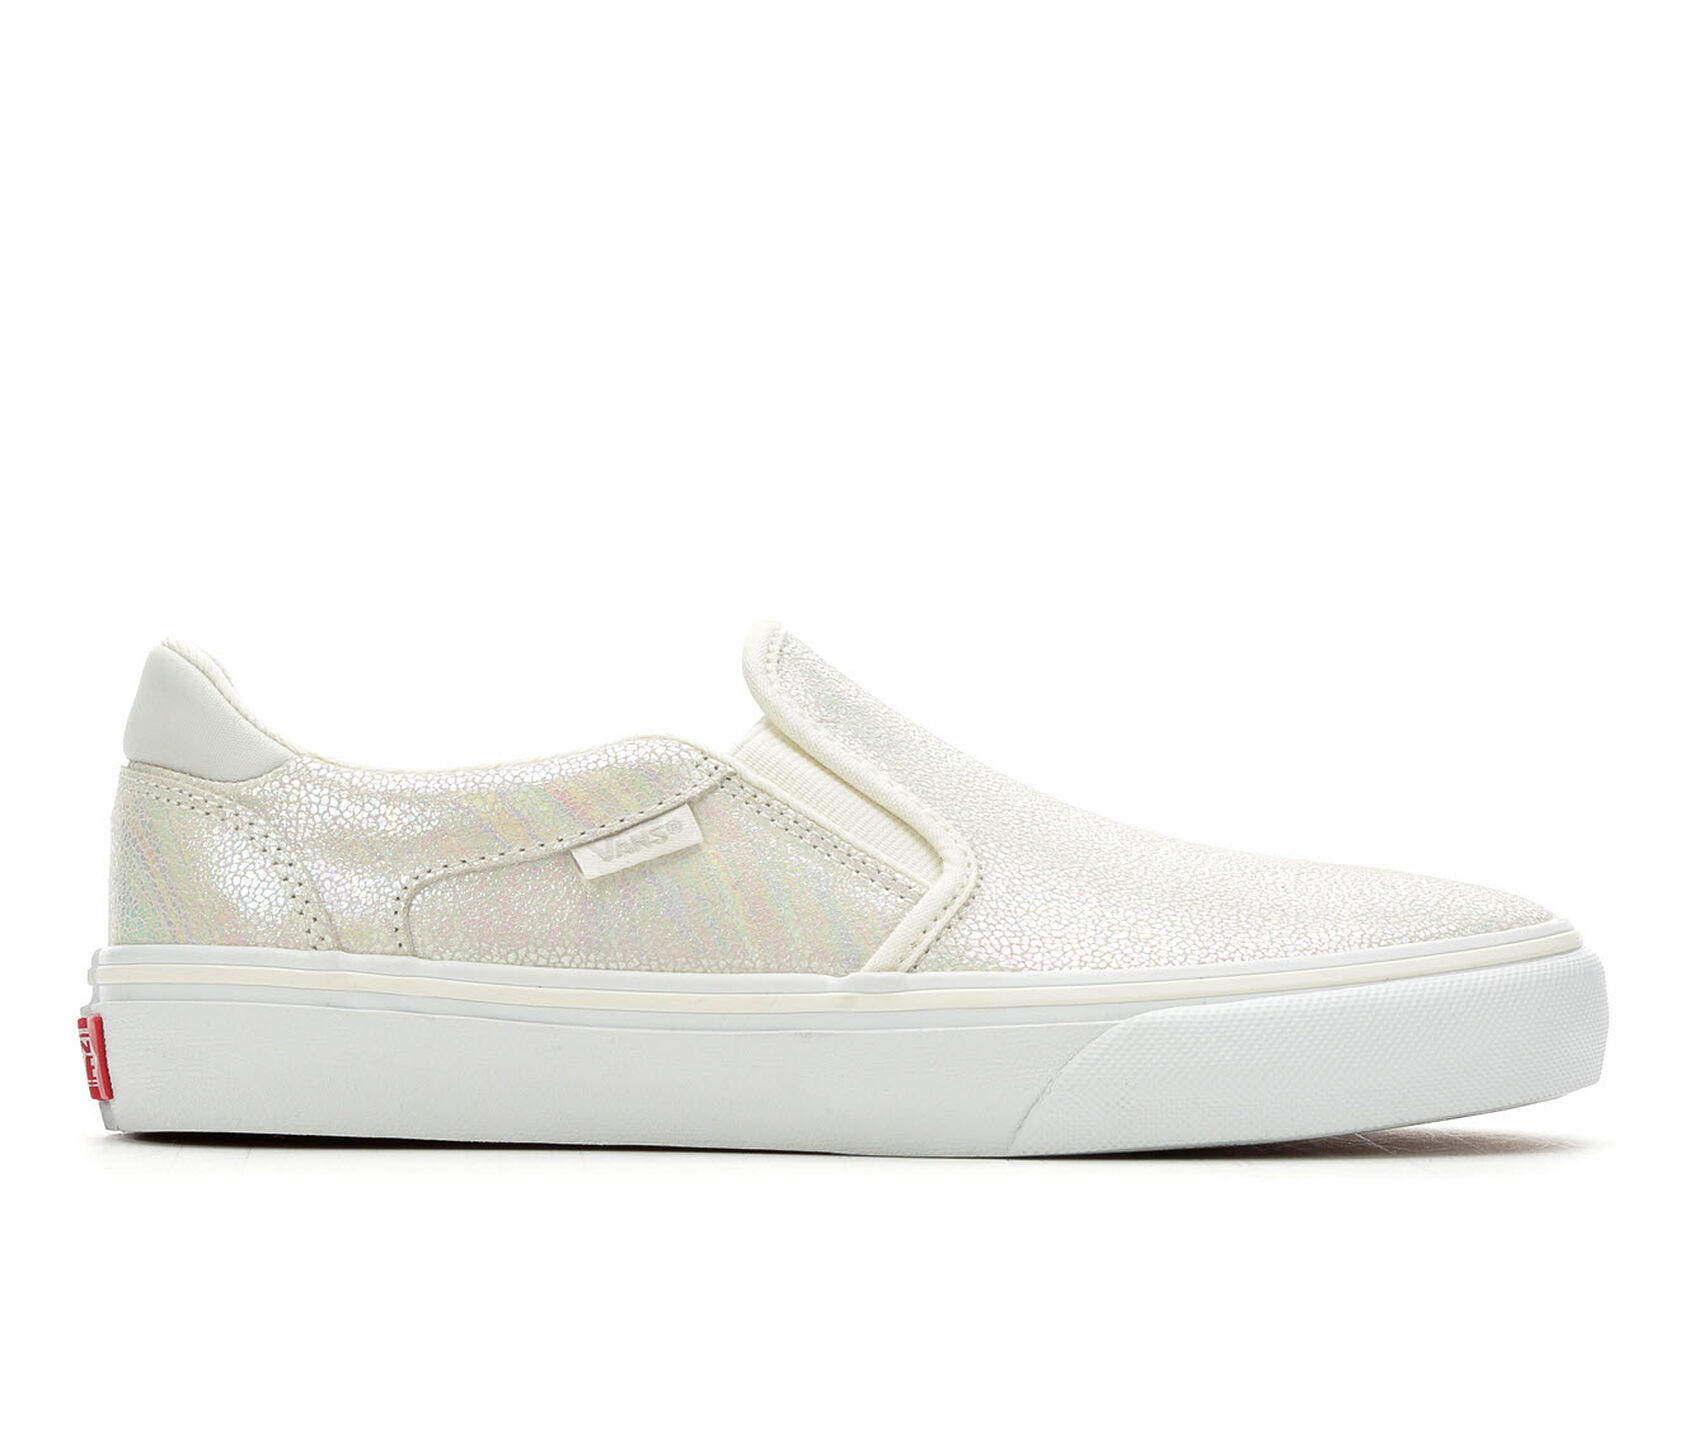 ... Vans Asher Deluxe Skate Shoes. Previous 0ddc92079